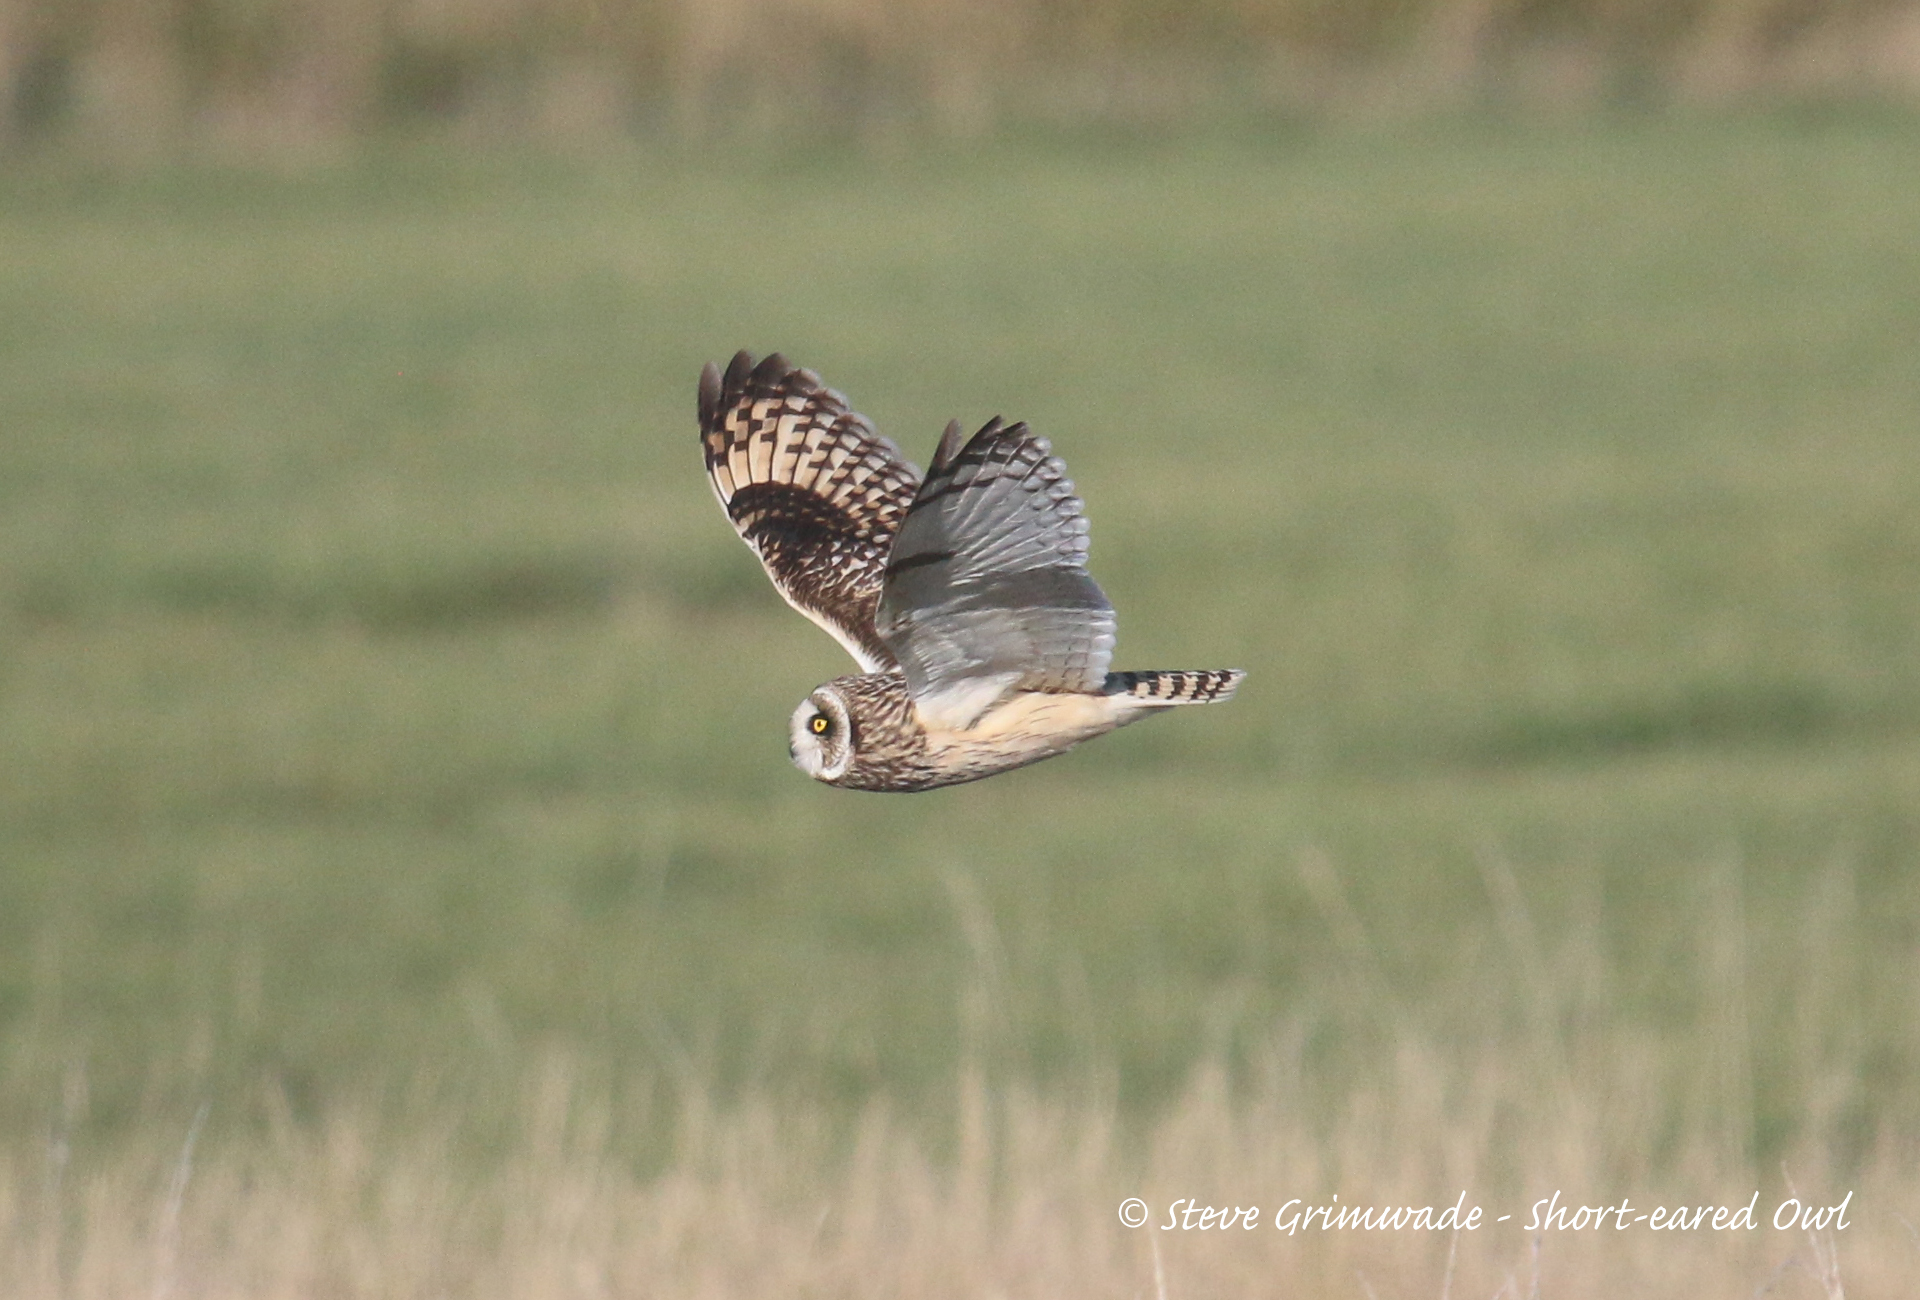 Short-eared Owl at Holland Haven on 21 Oct 2018, (Steve Grimwade, )